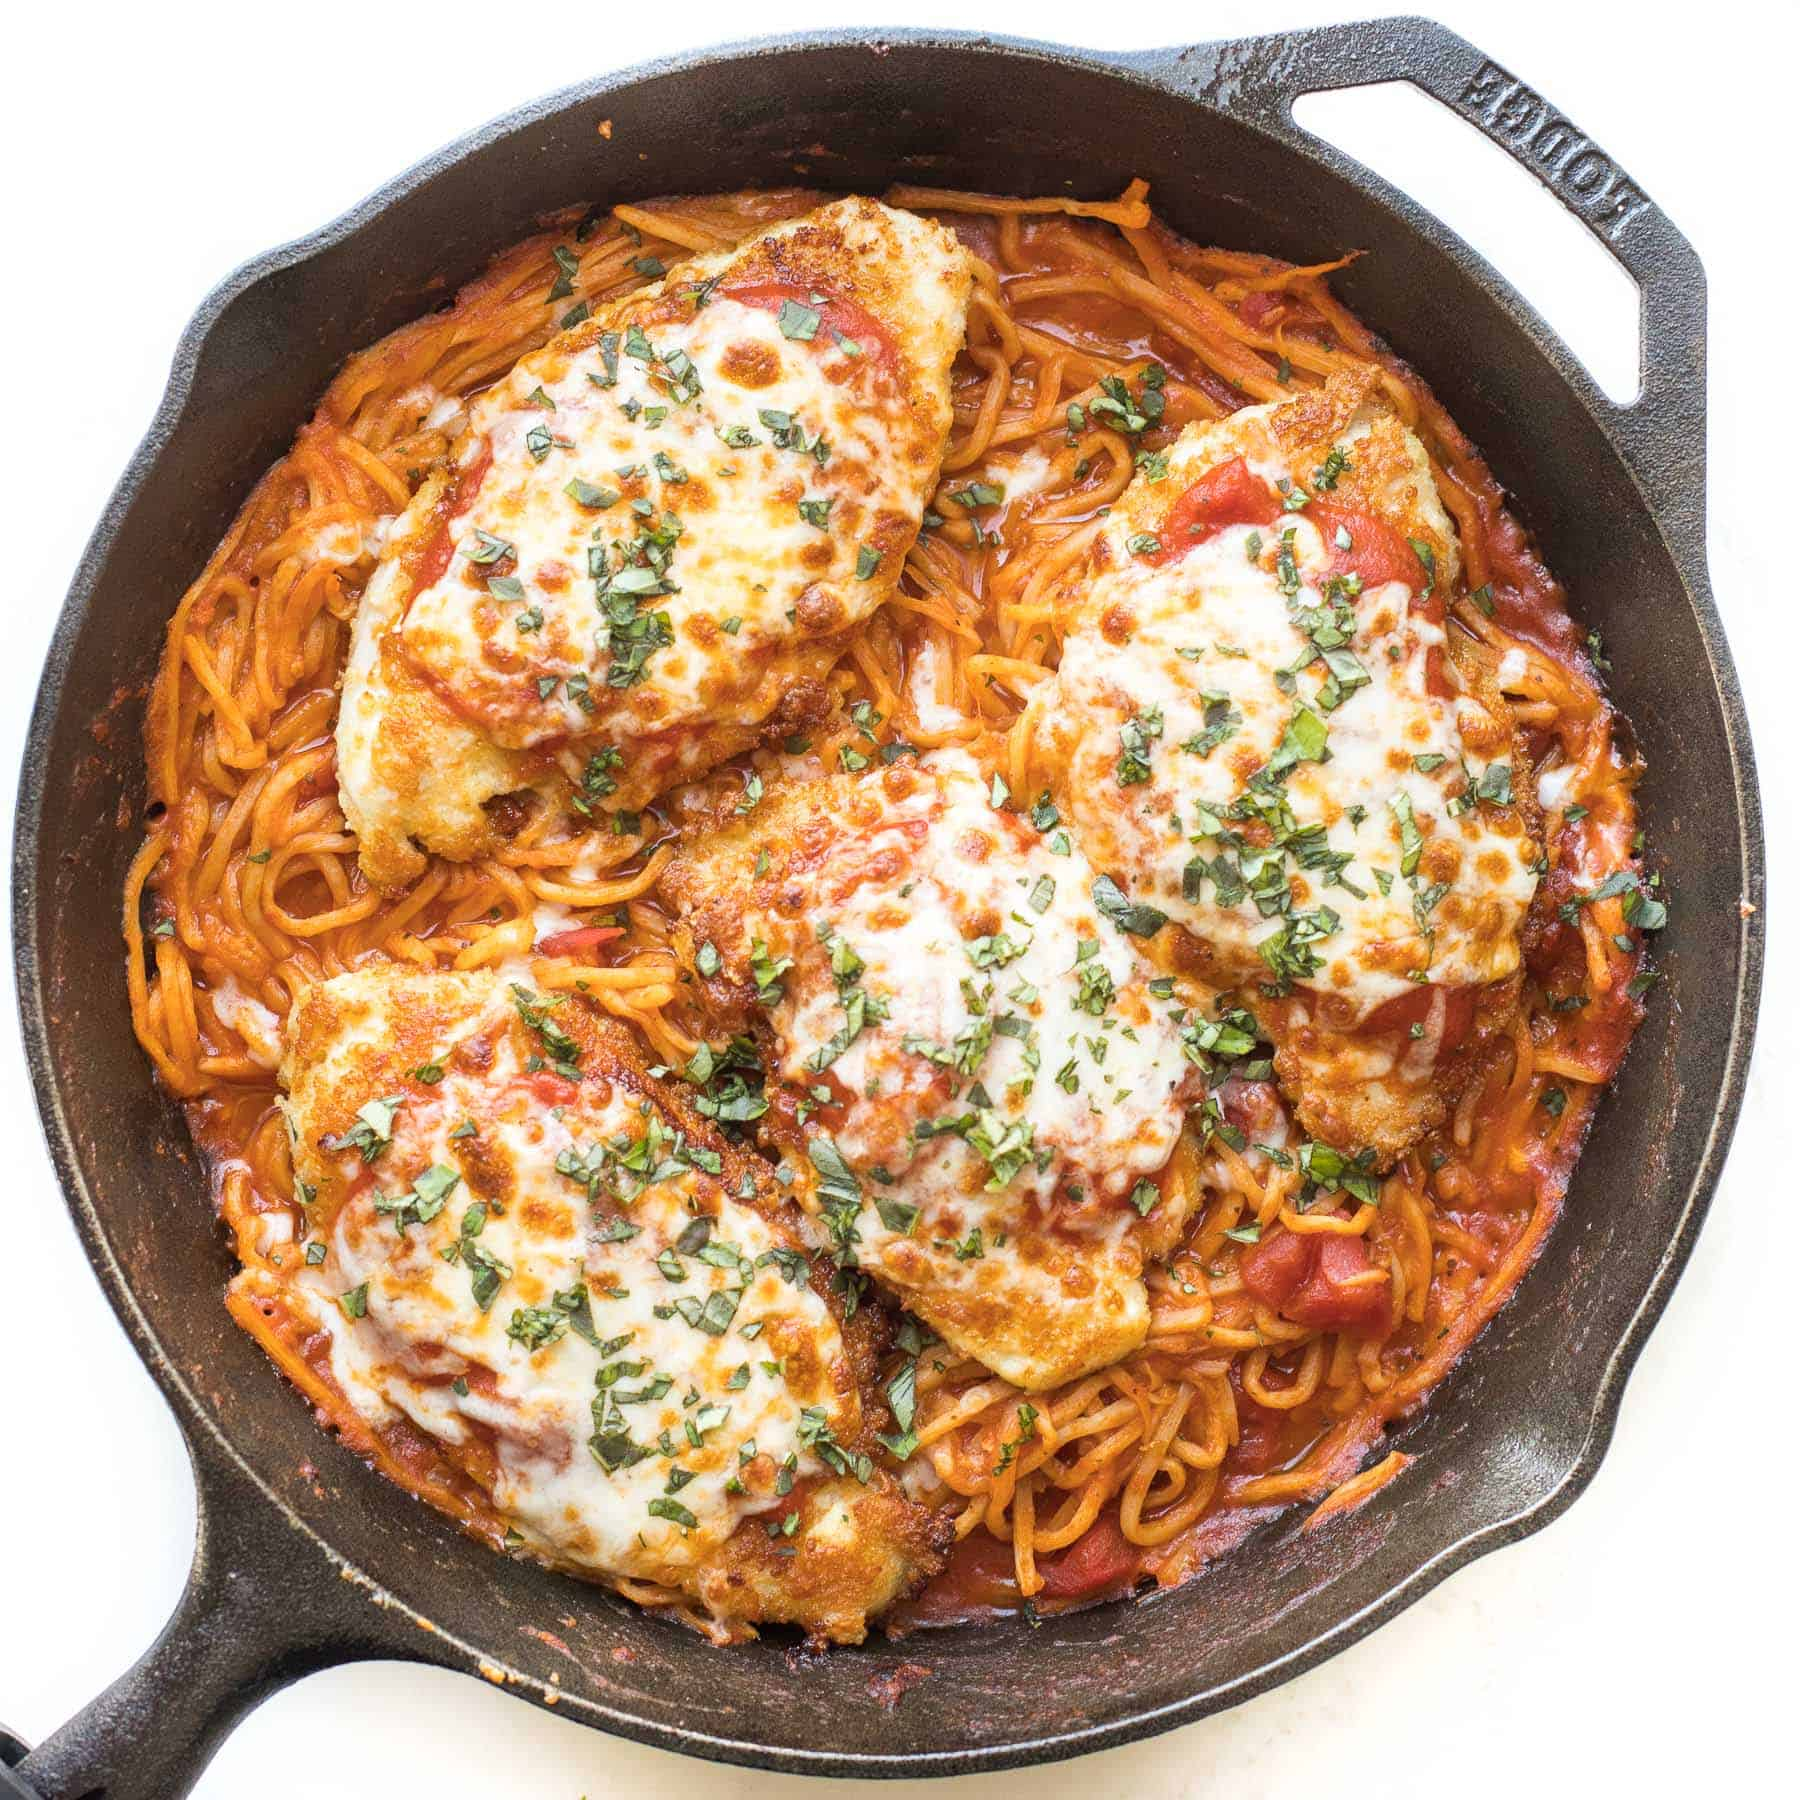 keto skillet chicken parmesan in a cast iron skillet on a white background